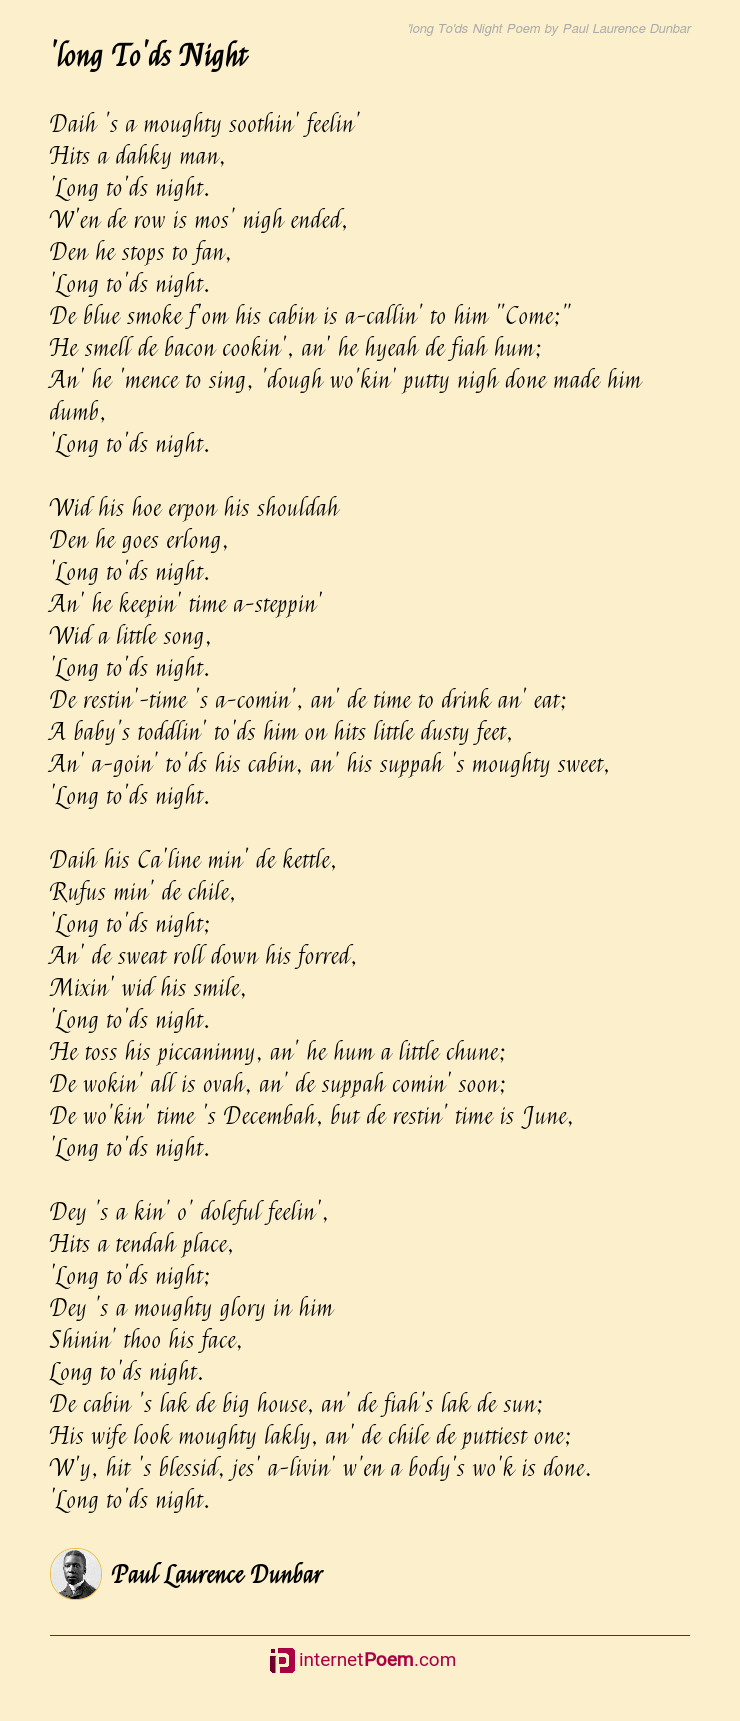 long To'ds Night Poem by Paul Laurence Dunbar